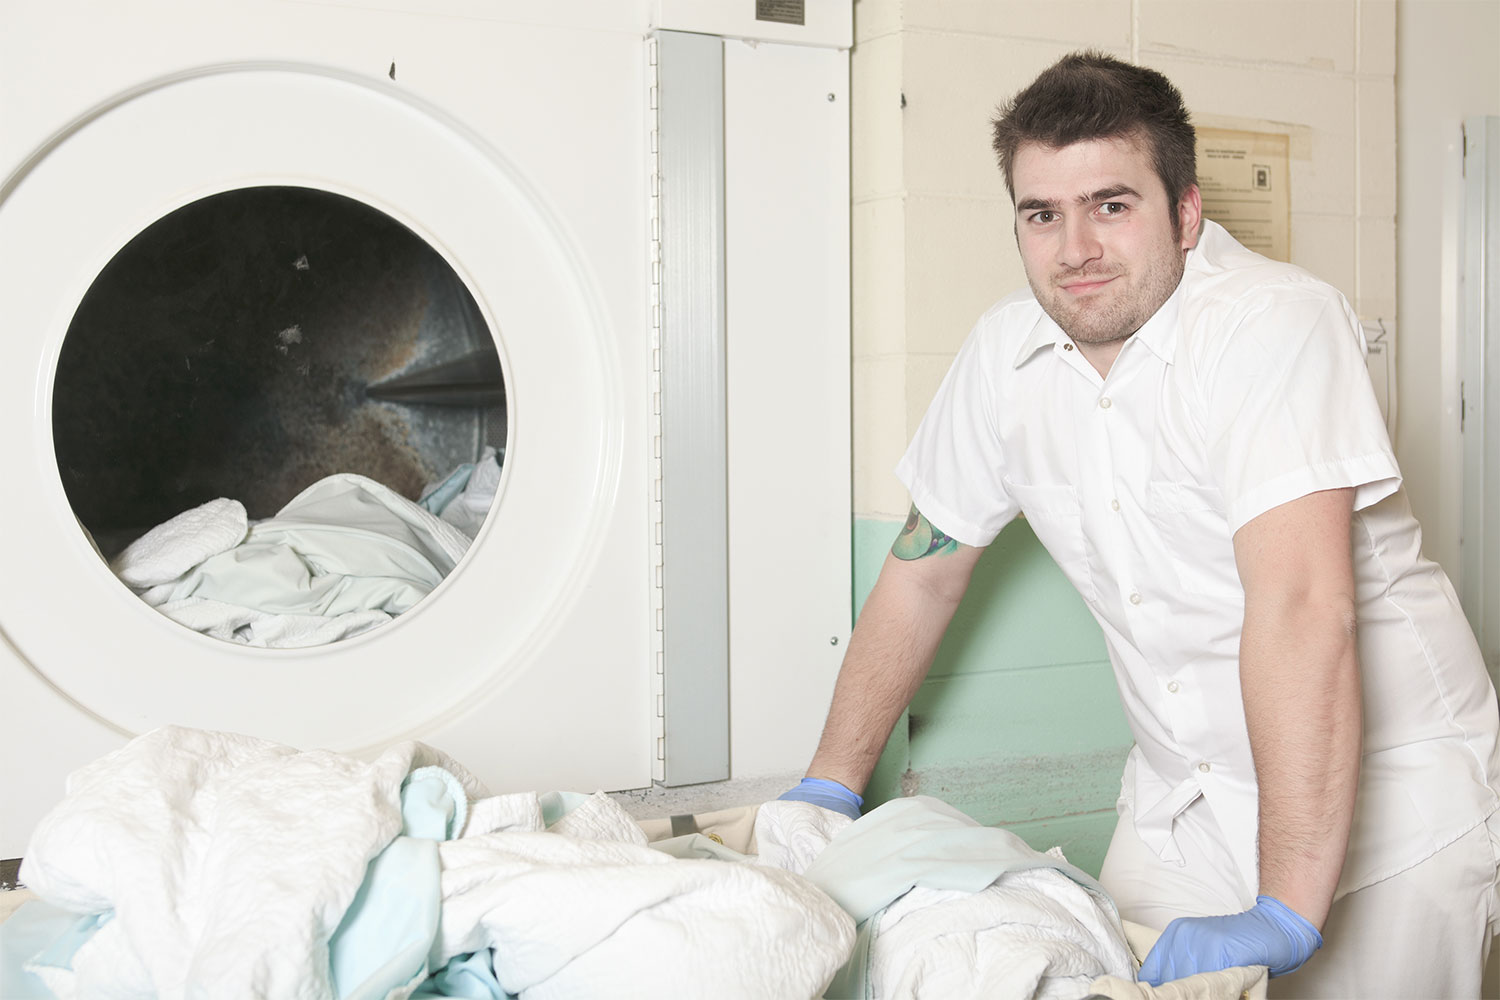 Government Laundry Operation Solutions